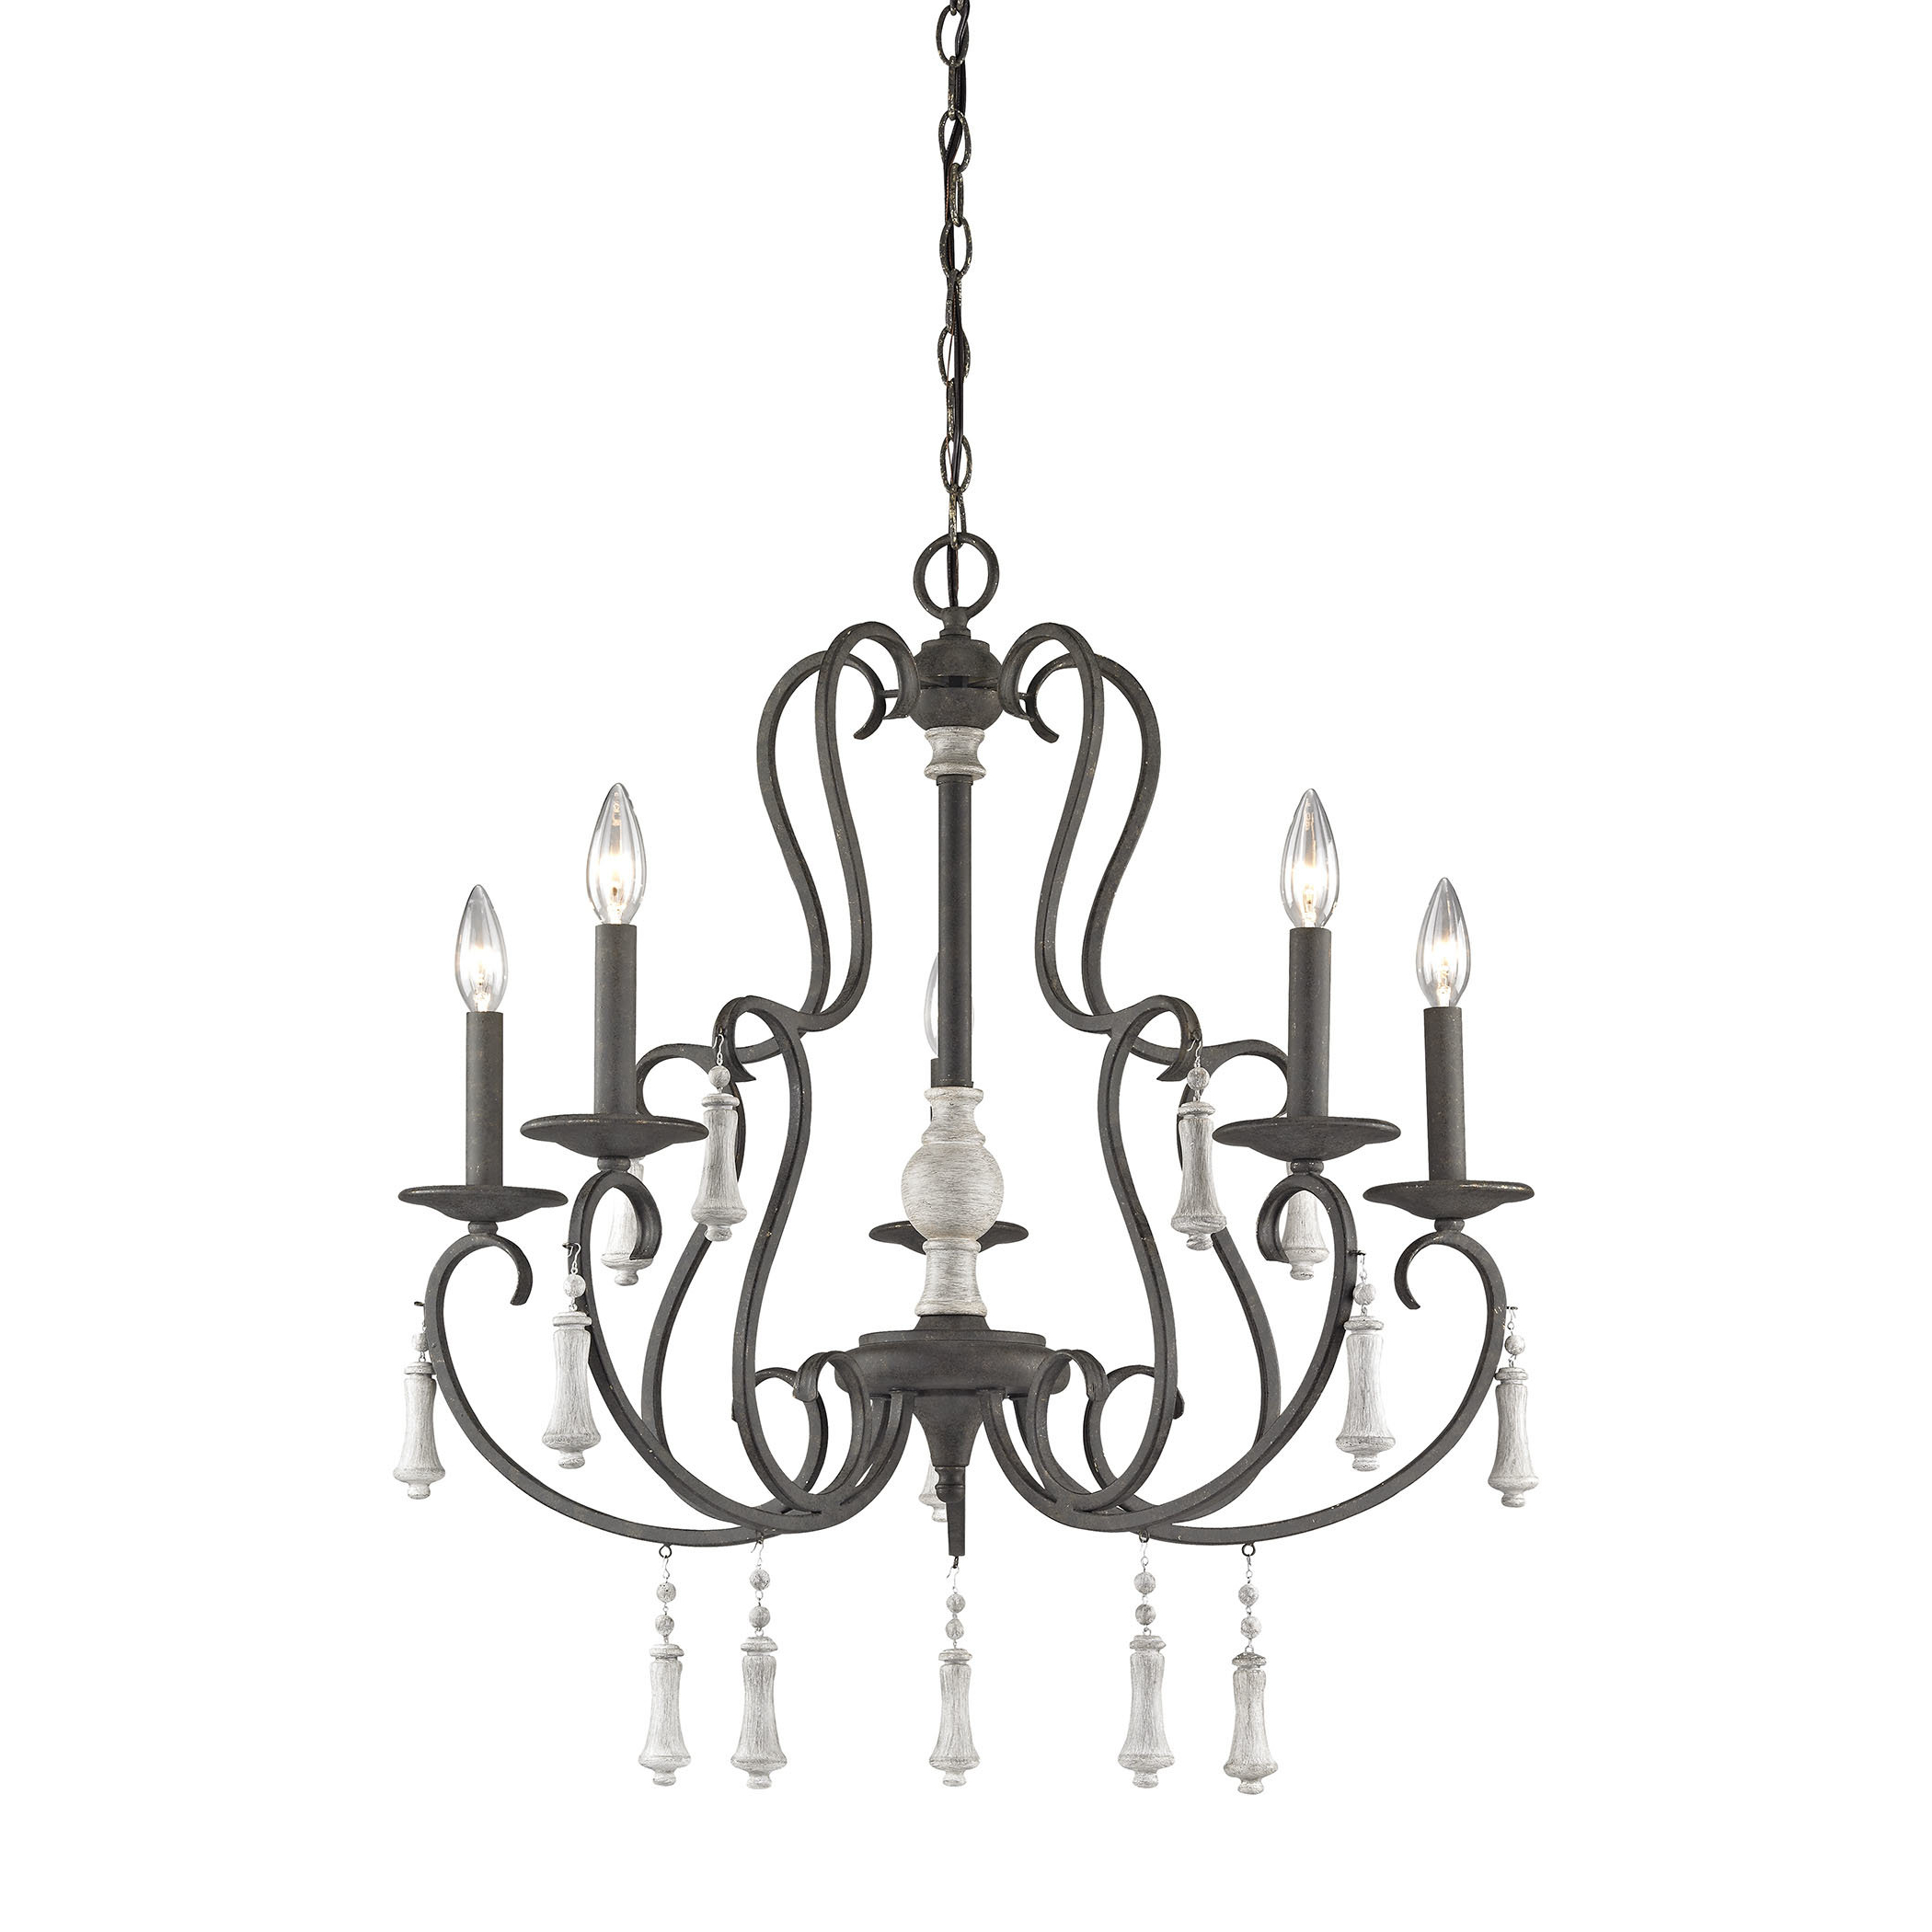 Corneau 5 Light Chandeliers Throughout Fashionable Pollitt 5 Light Chandelier (Gallery 4 of 20)